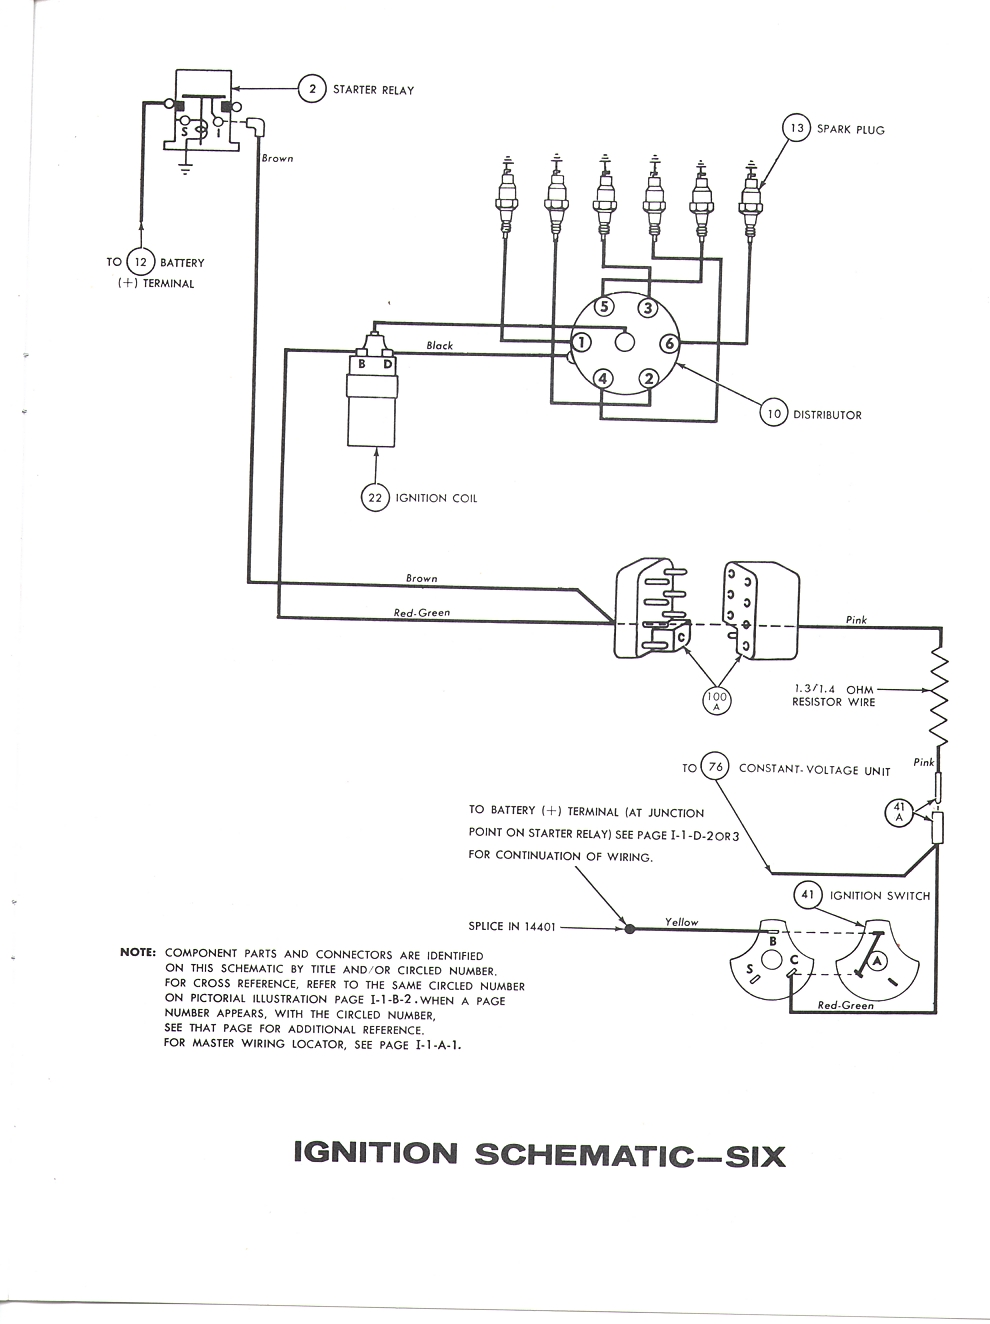 Here you will find Wiring Diagrams related to the Ford Falcon.